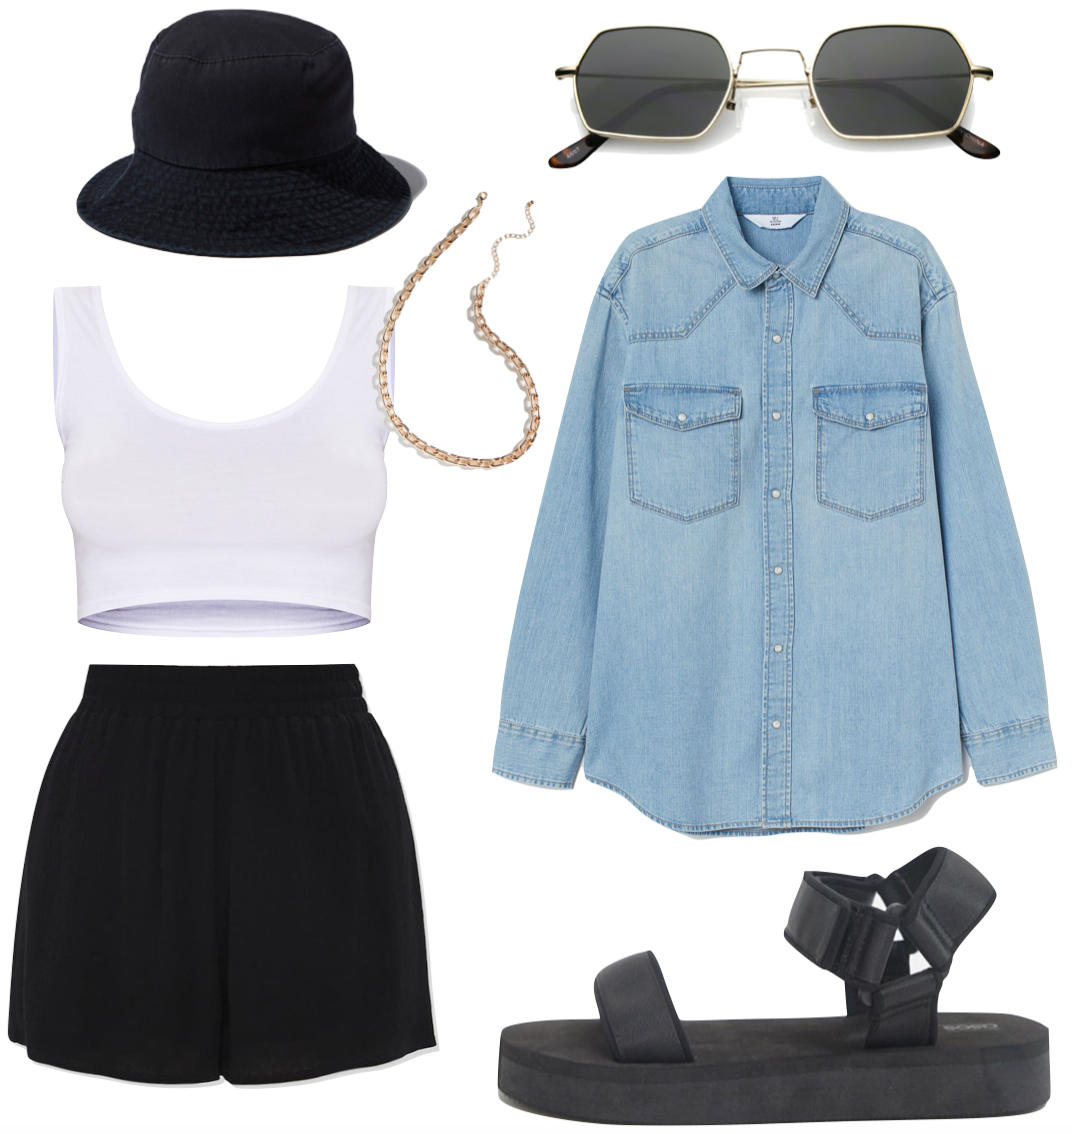 Shay Mitchell bucket hat Outfit: white cropped tank top, black high rise shorts, black bucket hat, gold chain necklace, denim shirt, hexagon sunglasses, and black sporty double strap sandals